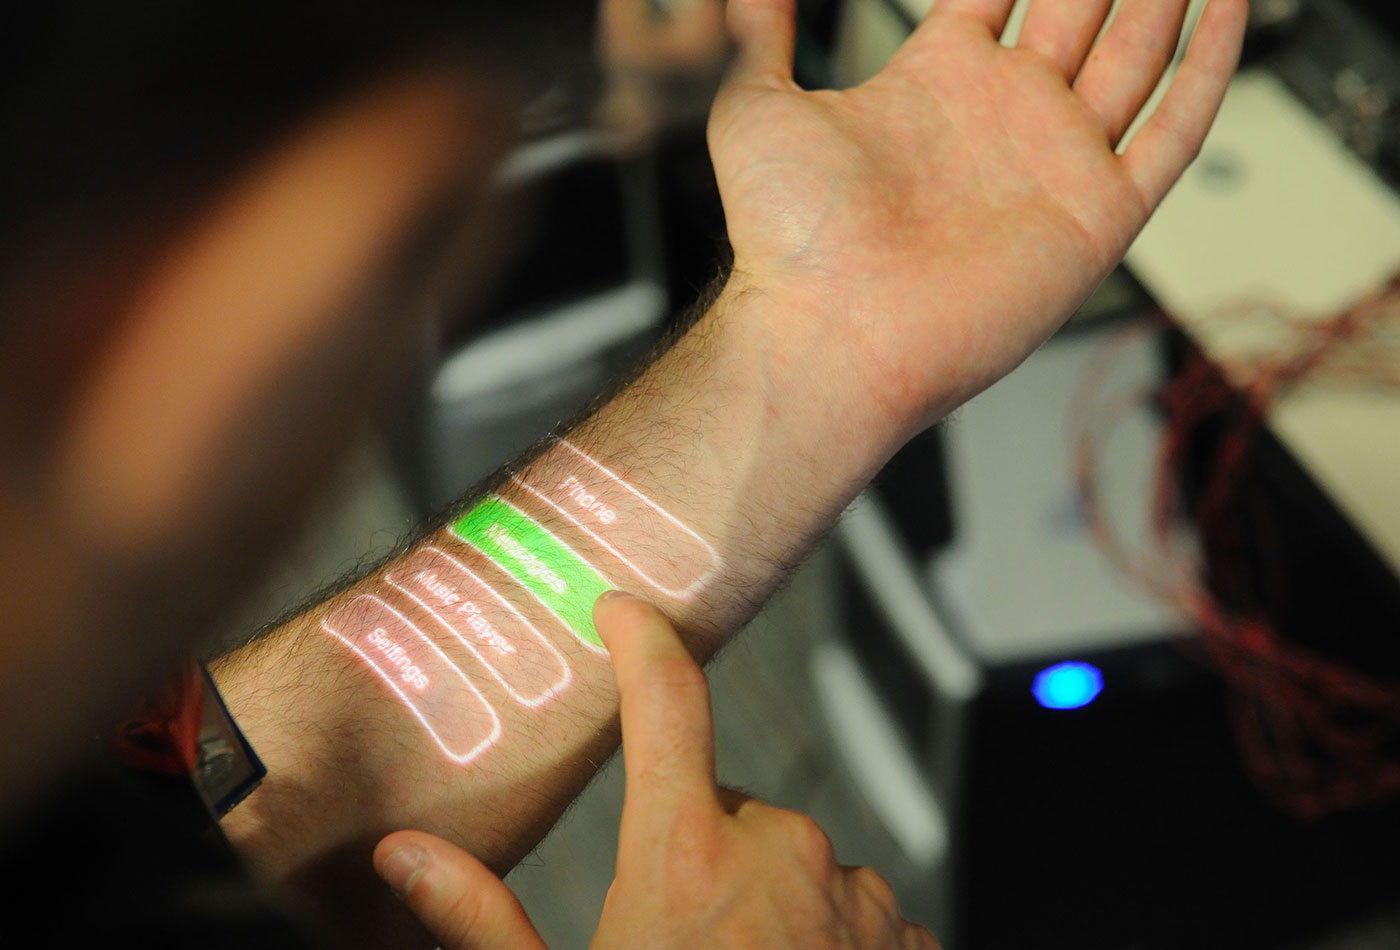 Skinput system using button-driven interface.